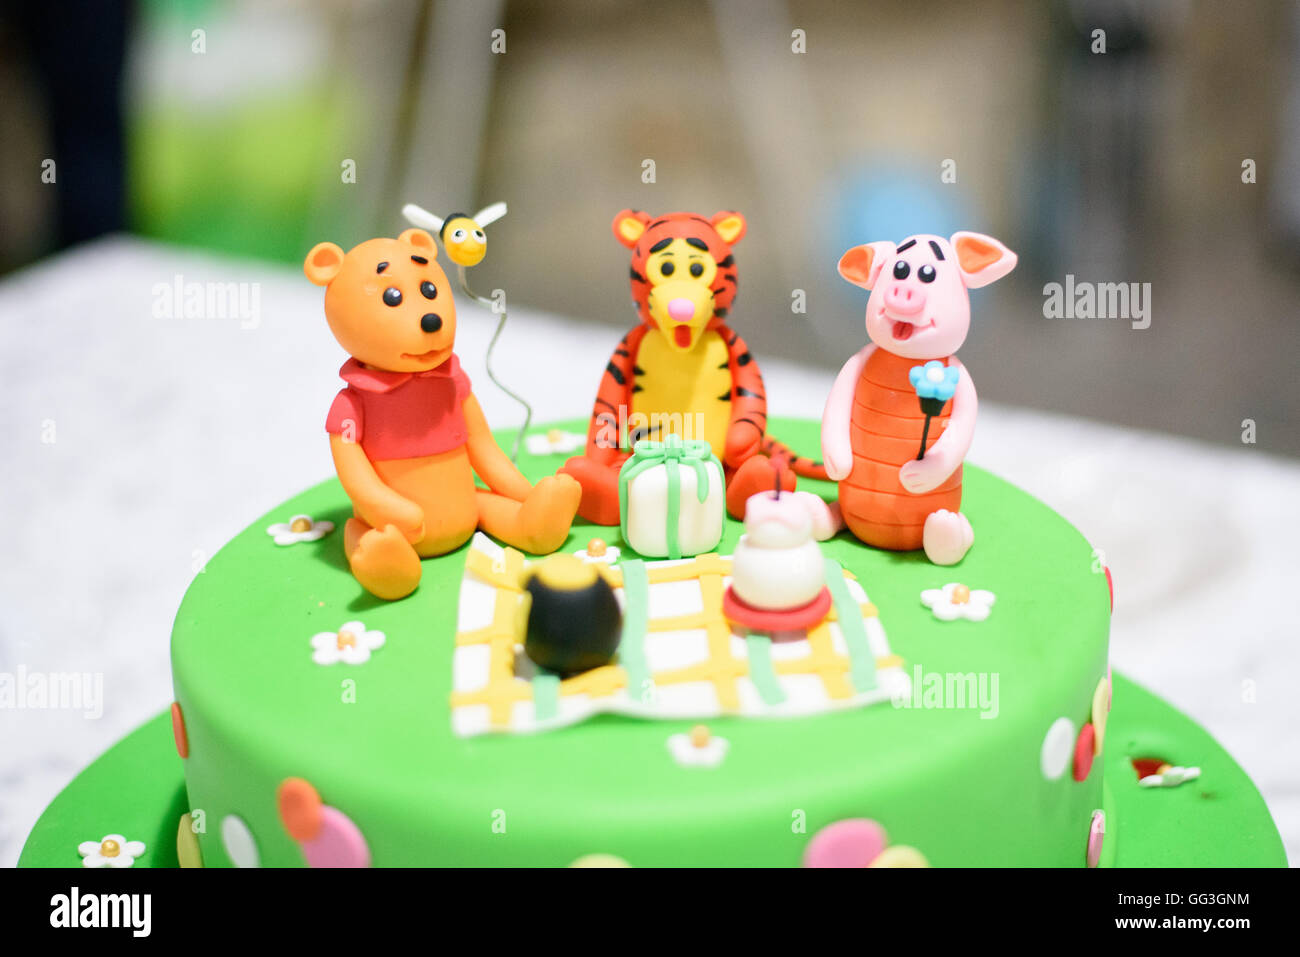 Birthday Cake With Candles And Winnie The Pooh By Disney Stock Photo